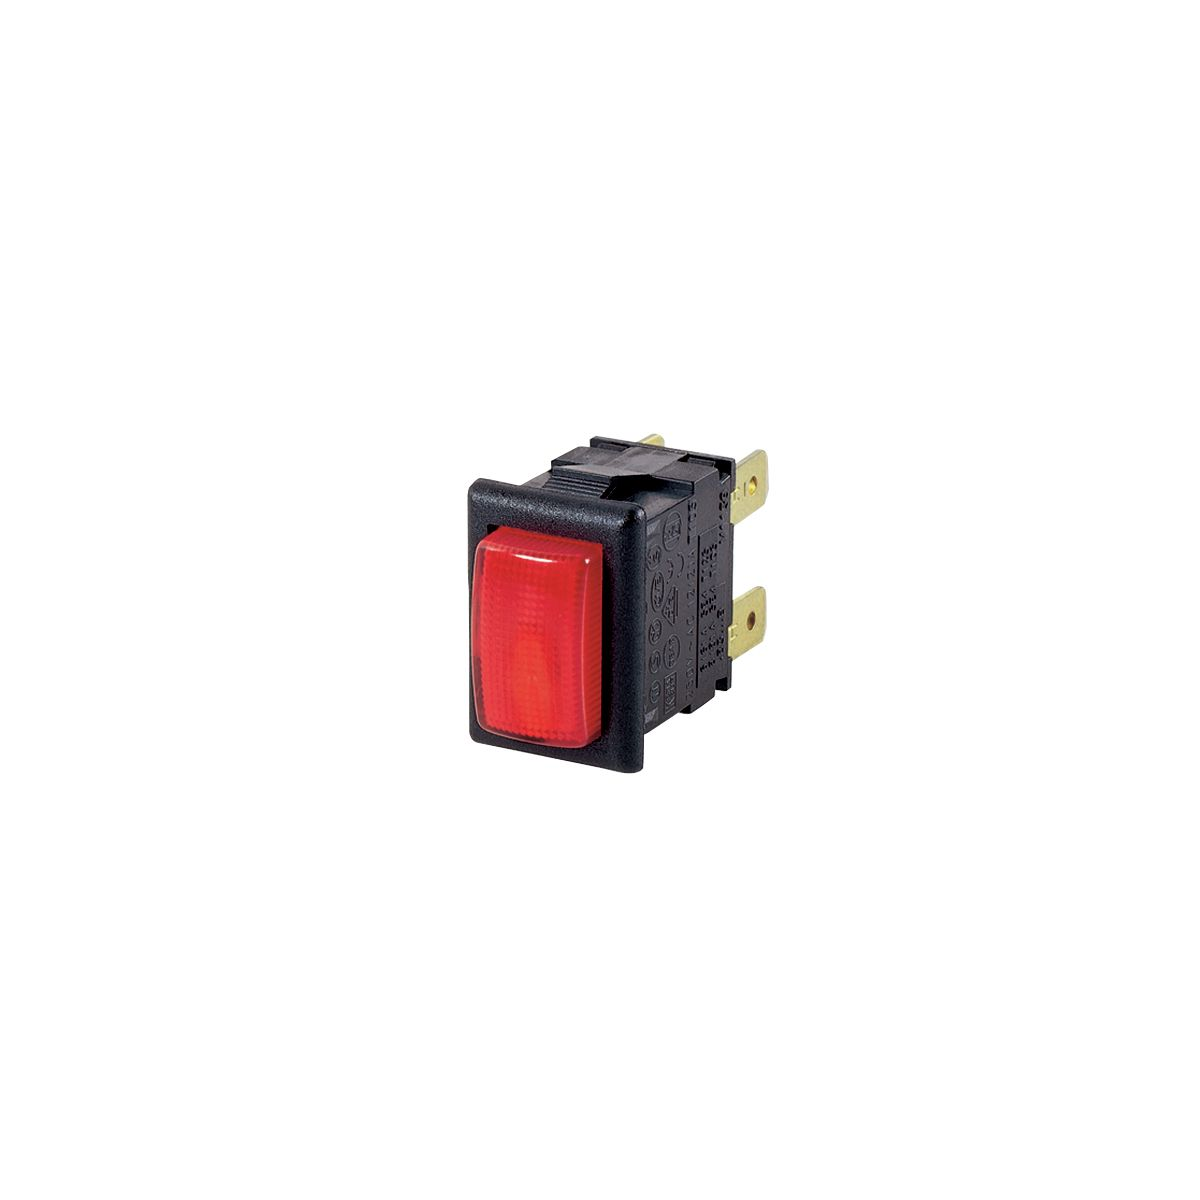 hight resolution of  16a 250vac max rating momentary or latching action solder or pcb termination illuminated options rectangular push button switches